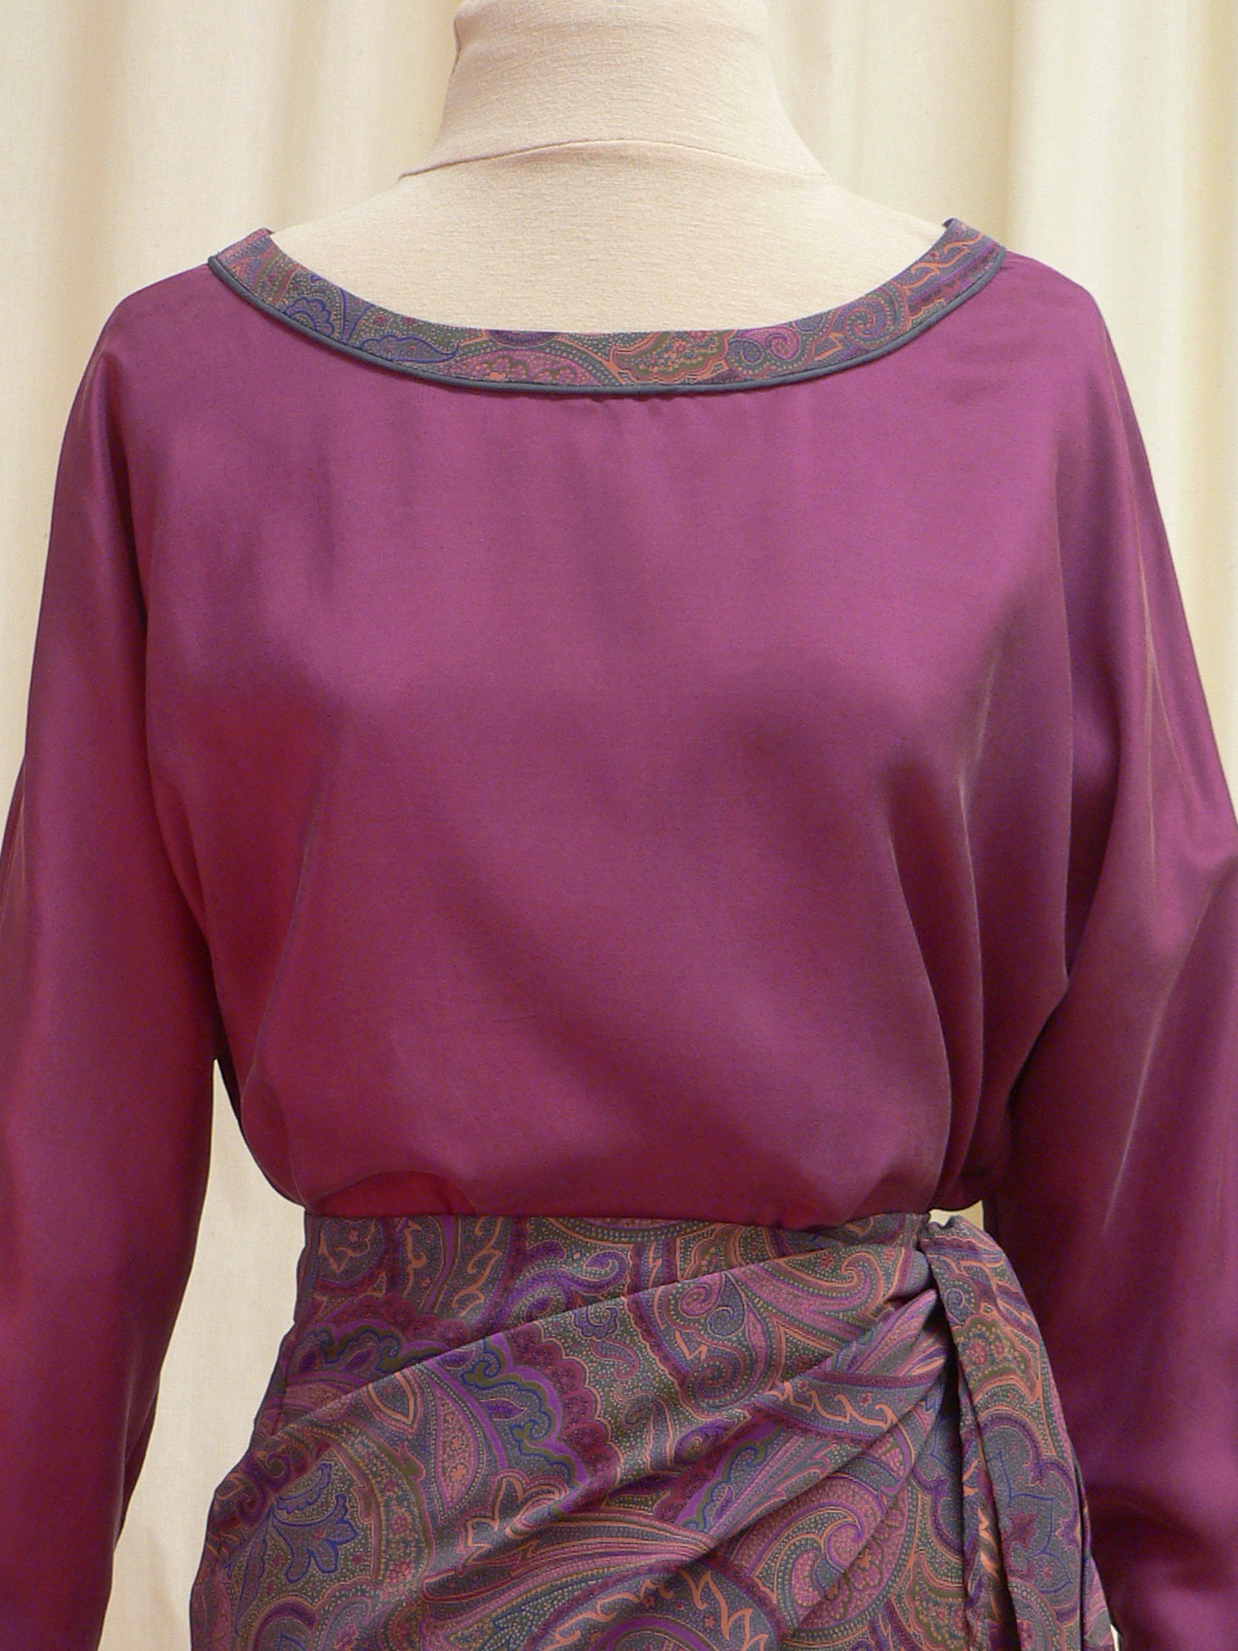 ensemble11_front_detail.jpg